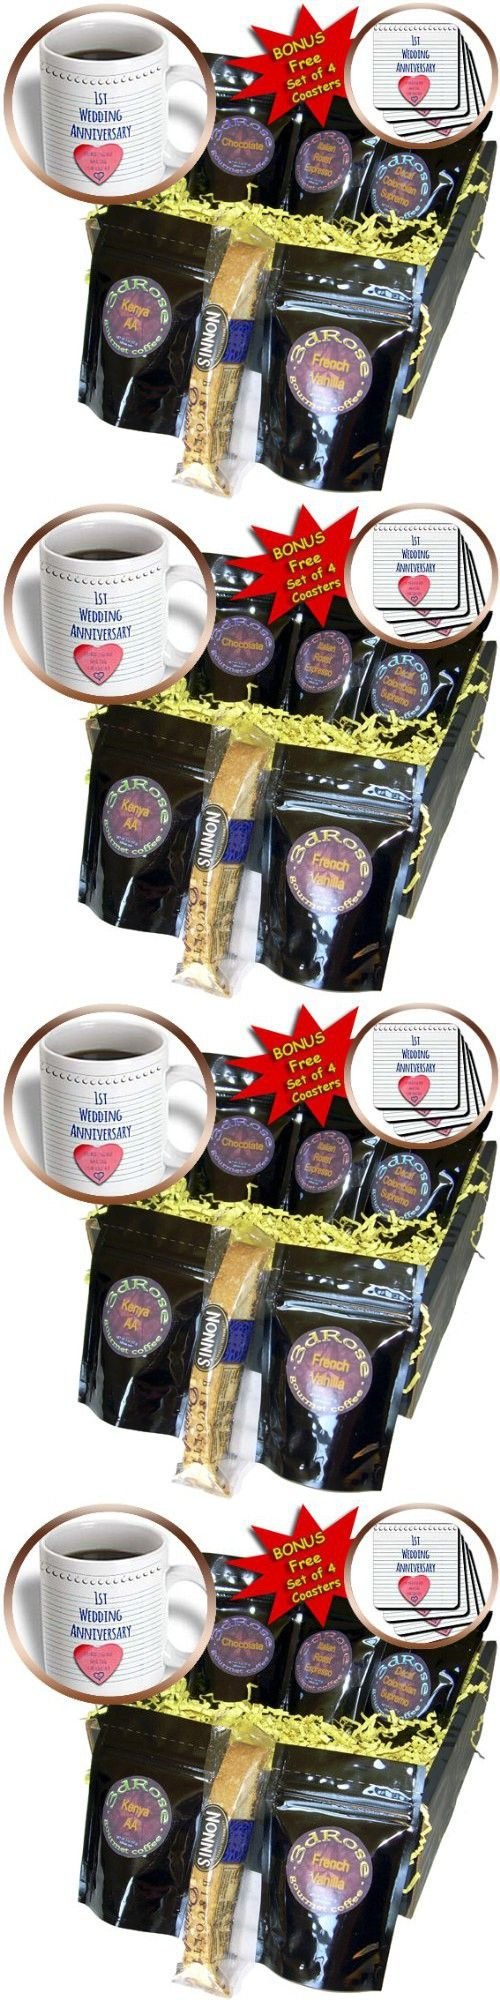 InspirationzStore Occasions - 1st Wedding Anniversary gift - Paper celebrating 1 year together - first anniversaries - one yr - Coffee Gift Baskets - Coffee Gift Basket (cgb_154428_1)